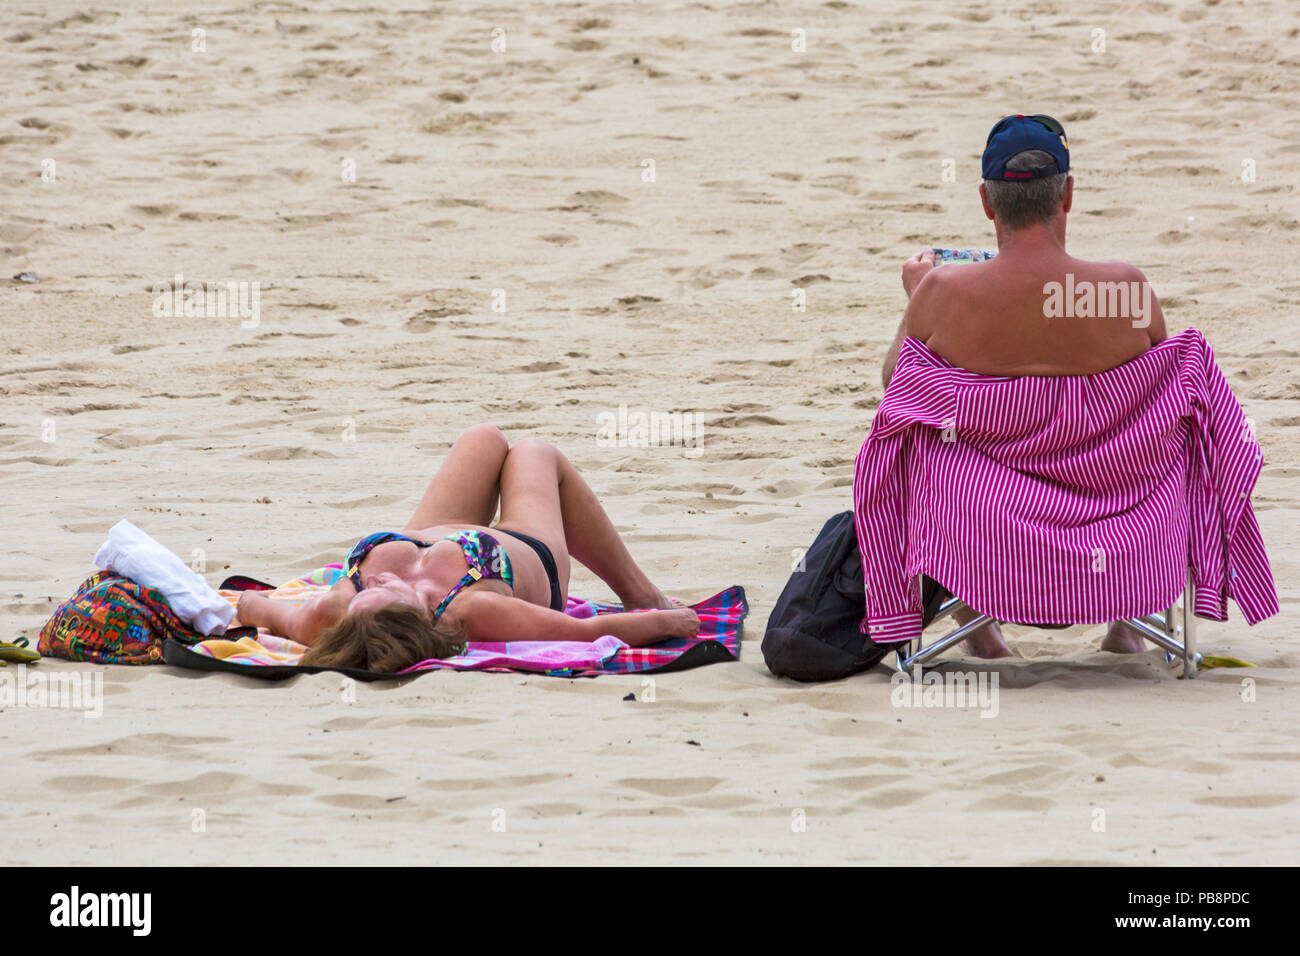 Bournemouth, Dorset, UK. 27th July 2018. UK weather: Sunseekers head to the seaside to soak up the sun at Bournemouth beaches on a warm humid day with some cloud cover. Couple sunbathing on the beach. Credit: Carolyn Jenkins/Alamy Live News - Stock Image